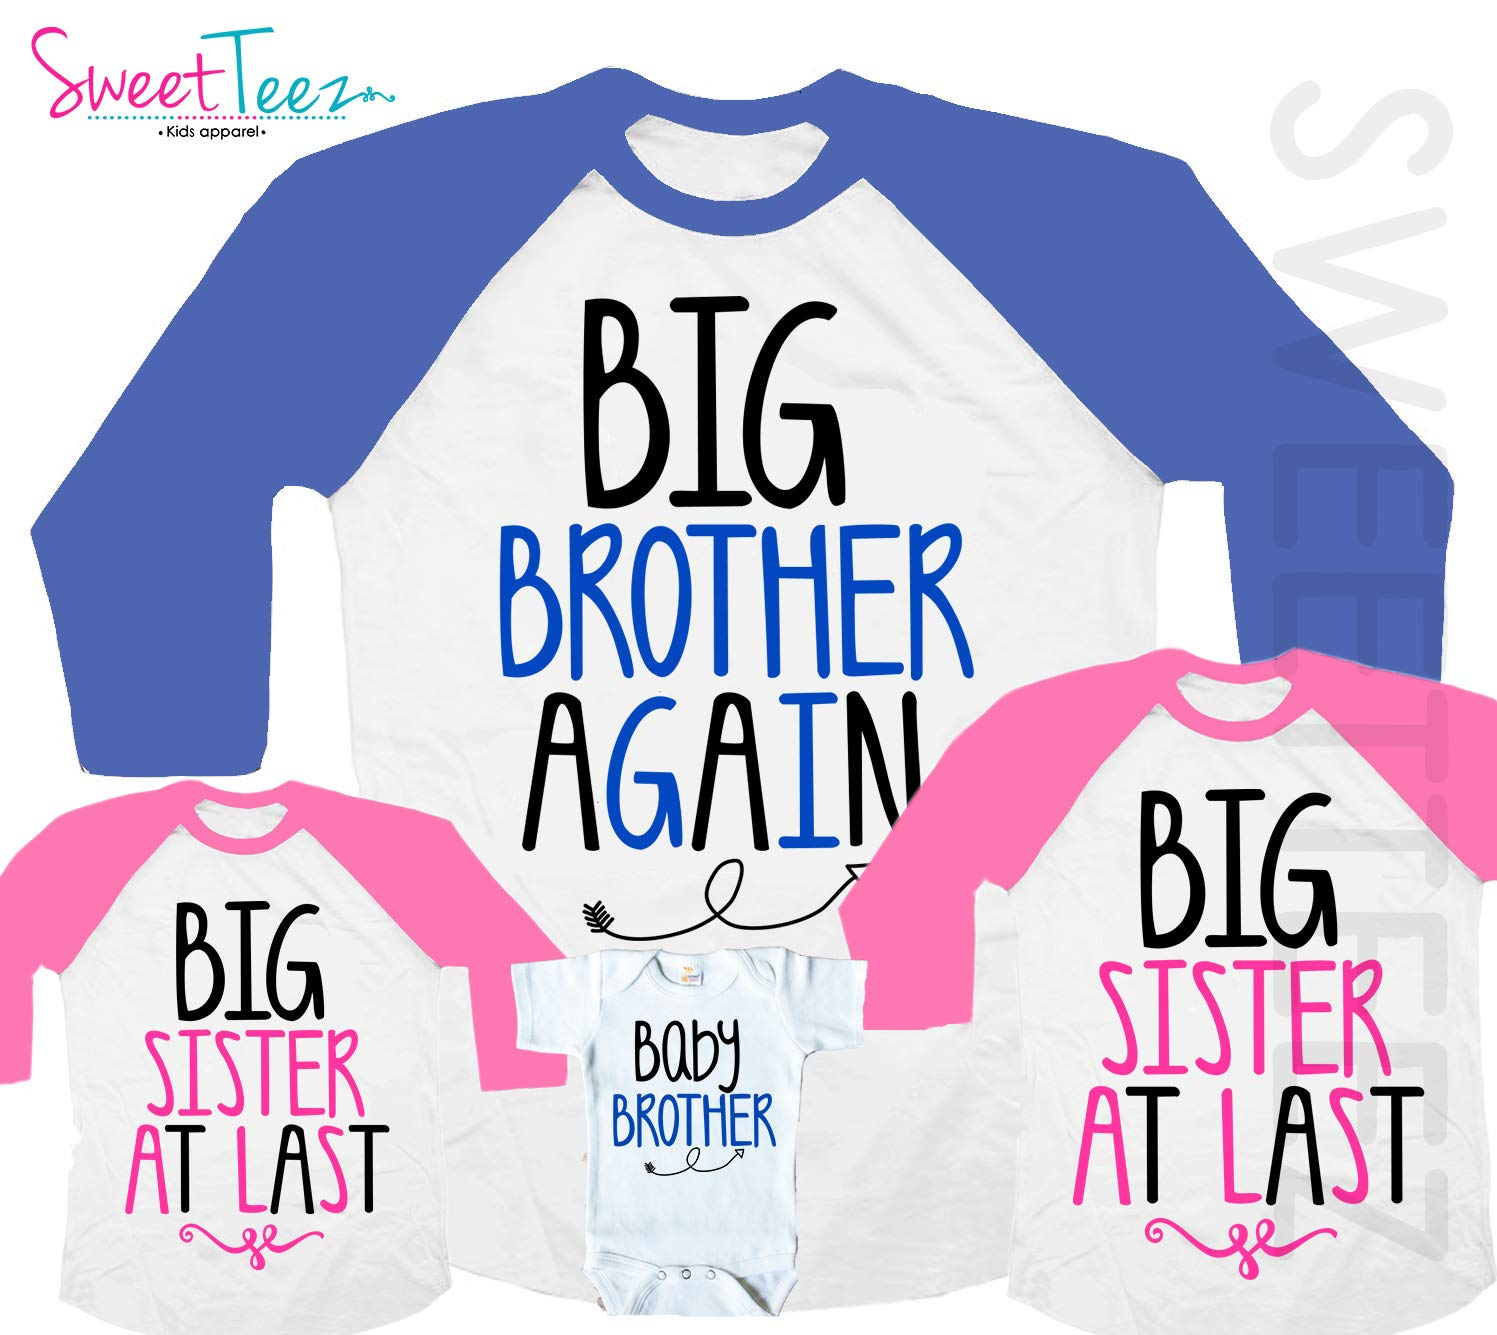 39ca8514834fd Amazon.com: Big Brother Again Big Sister At Last Baby Brother Shirt Set Of  4: Handmade